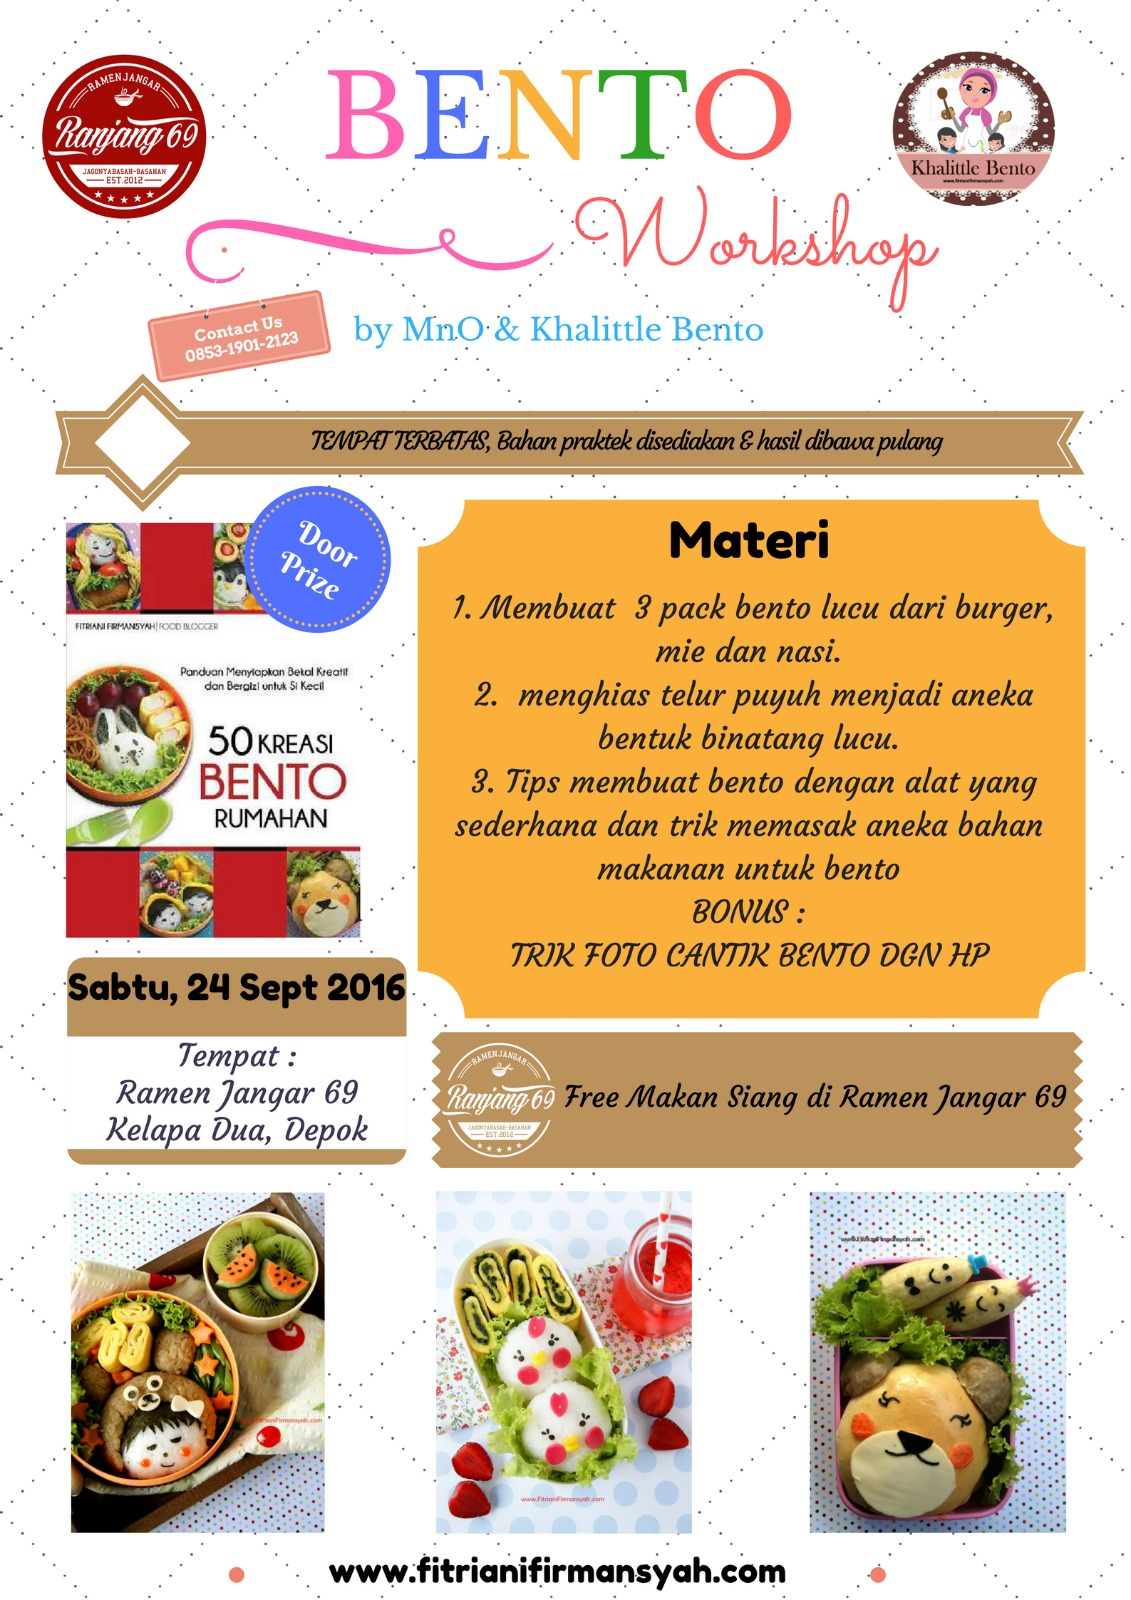 My Kind Of Wonderful Ikutan Workshop Basic Bento Yuk